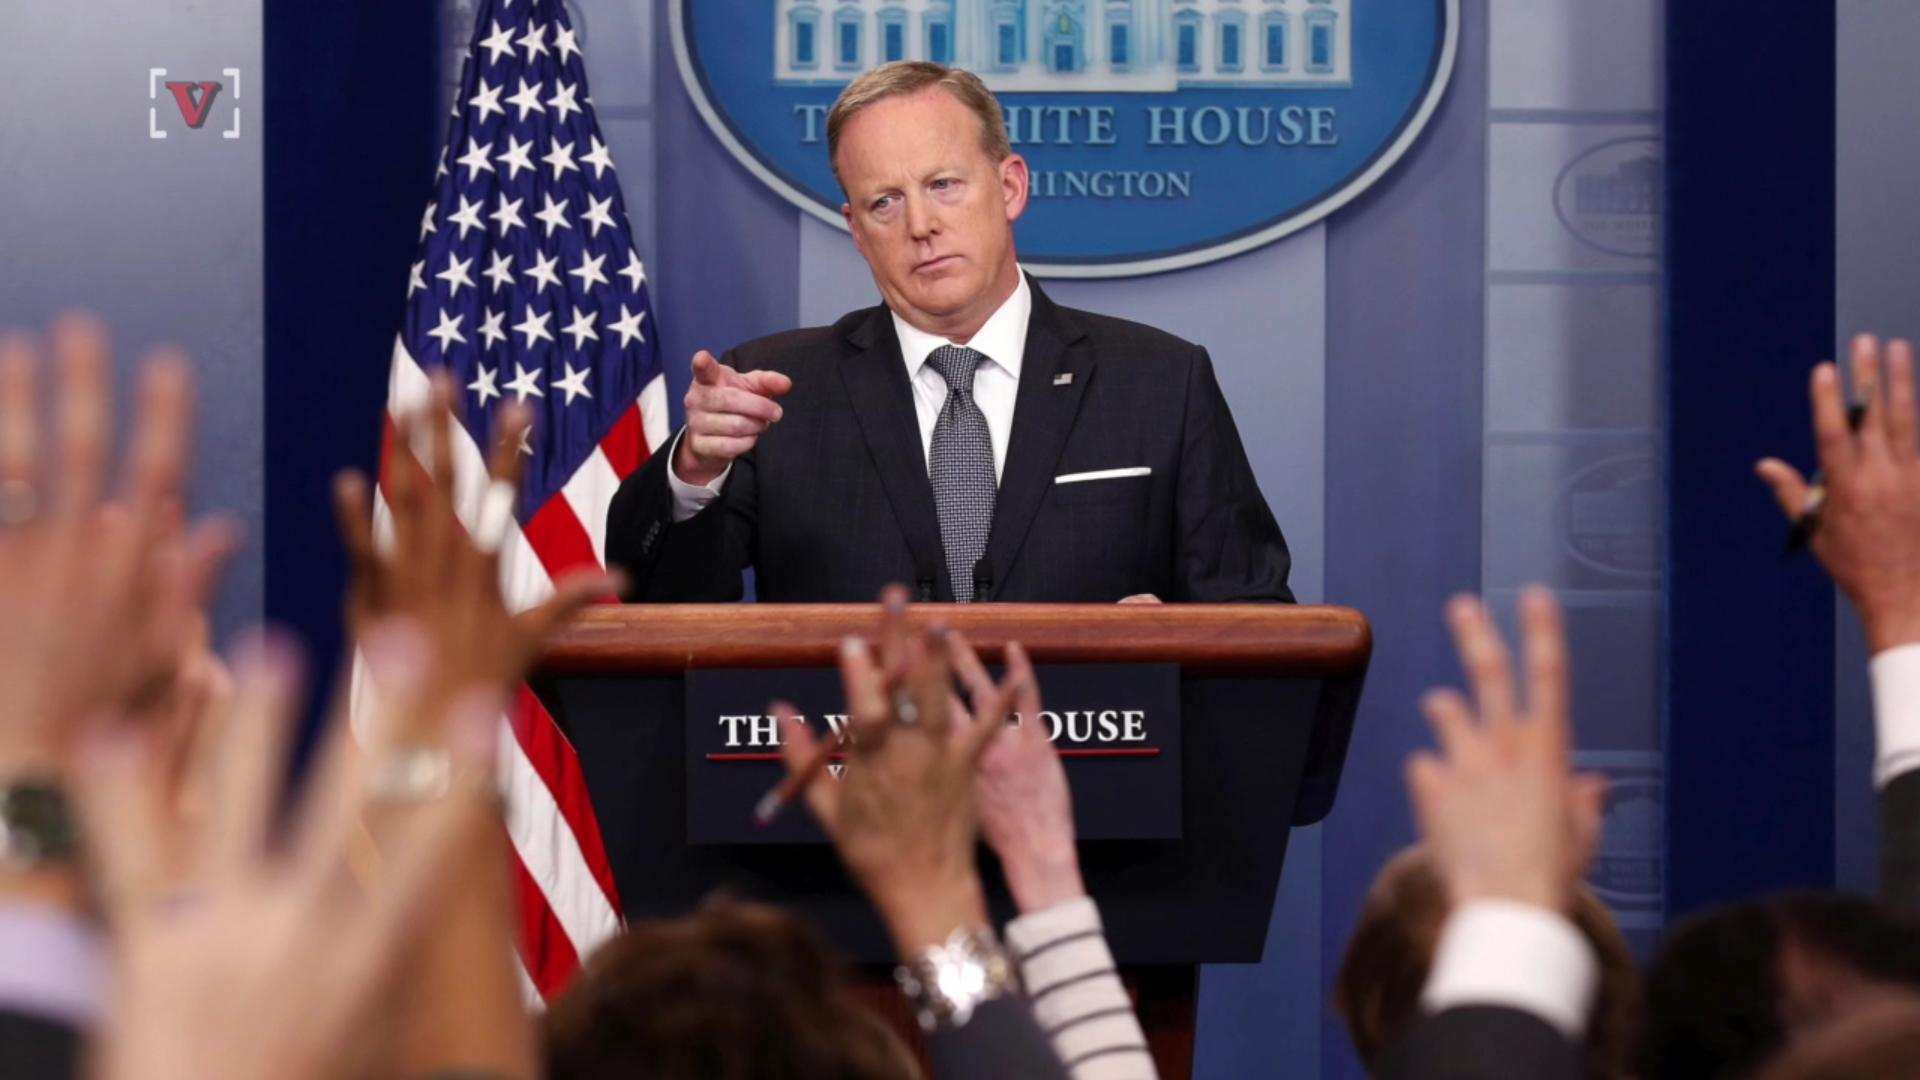 Spicer: Reporters Are More Interested In Their YouTube Channels Than Factual News